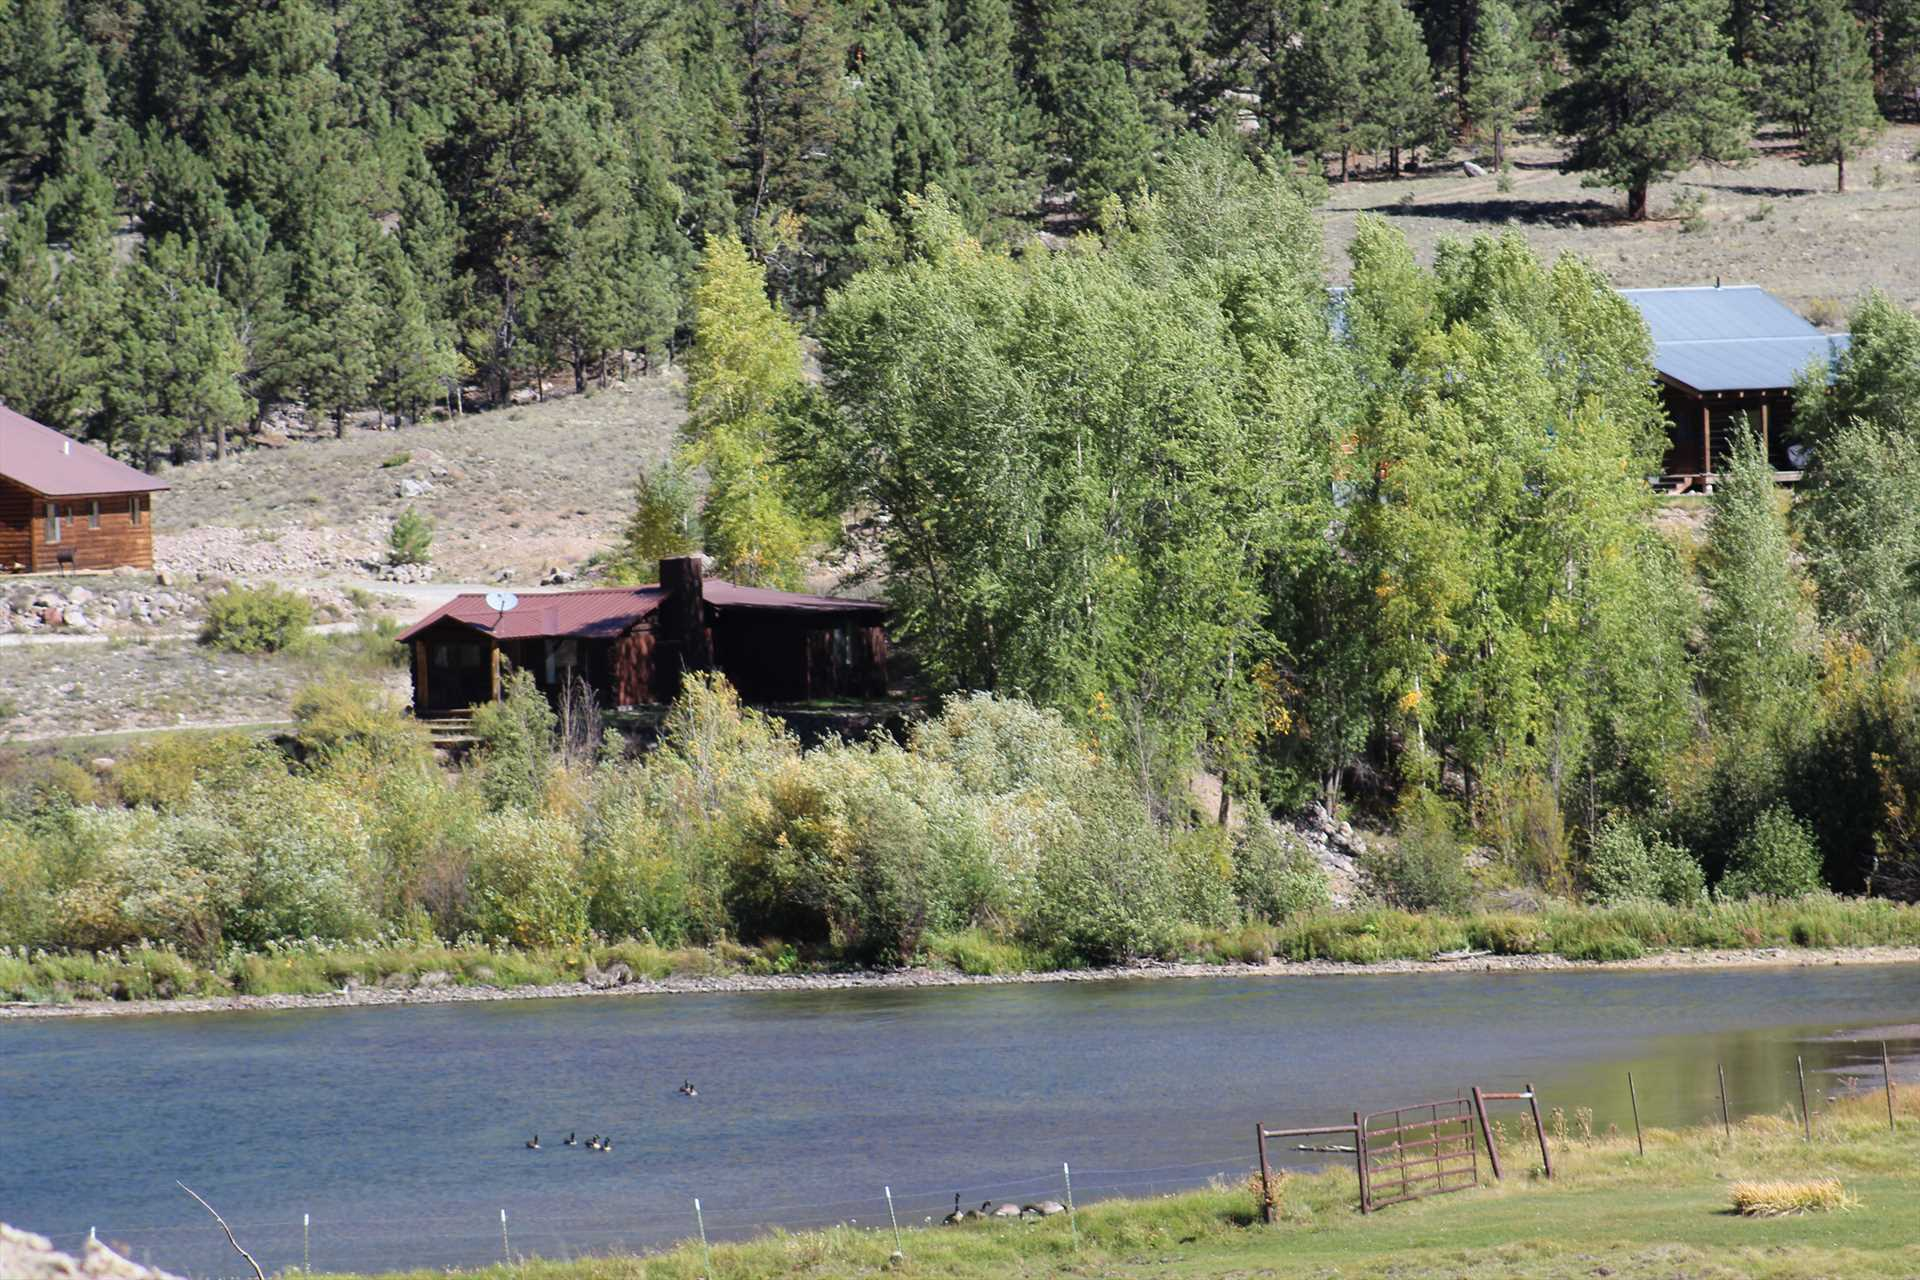 Lake Fork of the Gunnison in Front of the Cabin